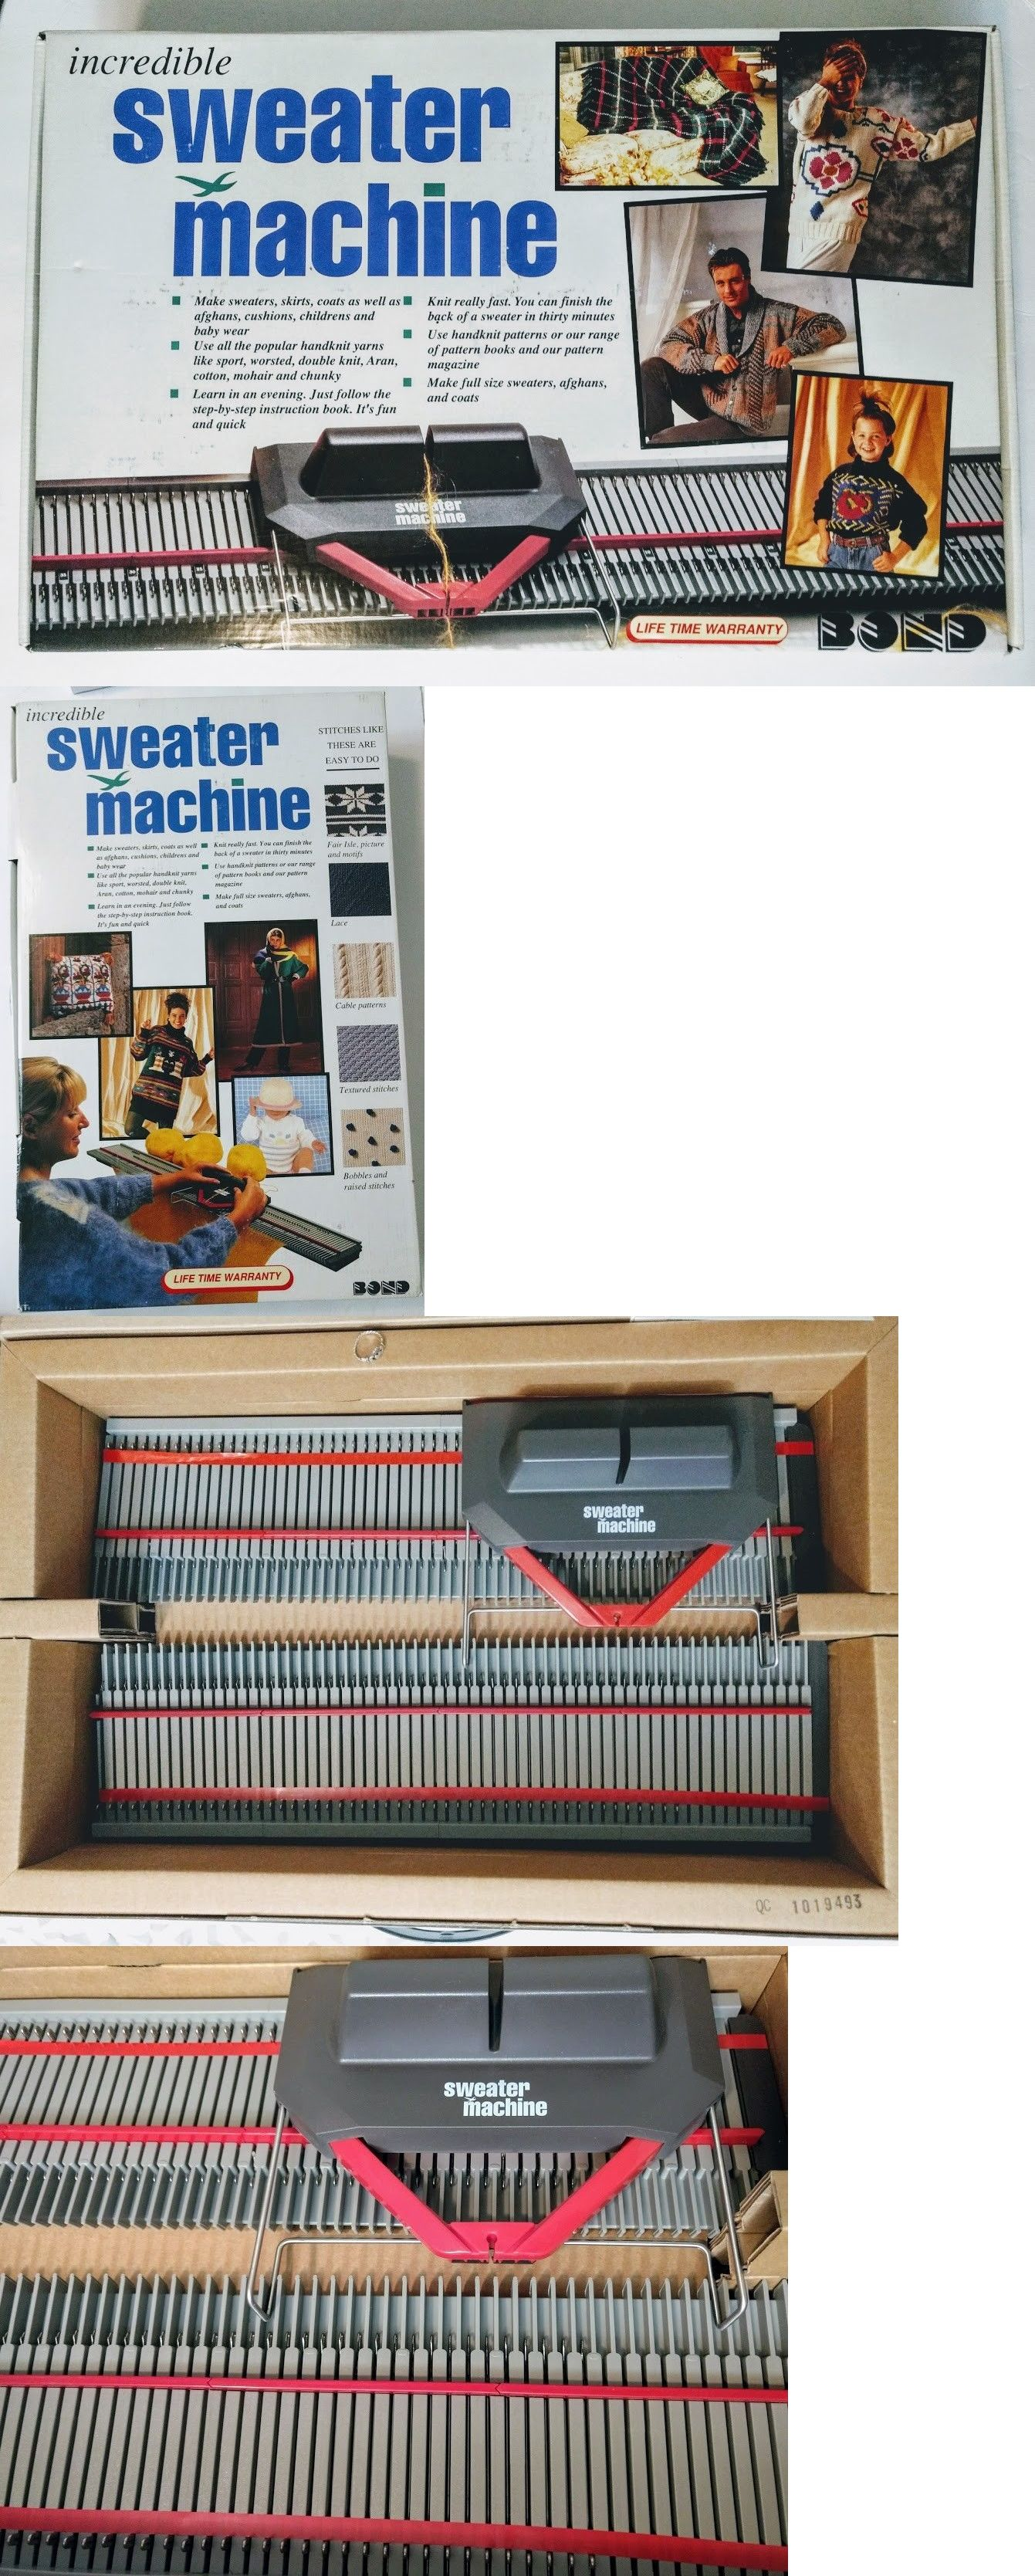 Incredible sweater machine manual ebook array knitting machines 28146 bond incredible sweater machine make afgans rh pinterest com fandeluxe Images